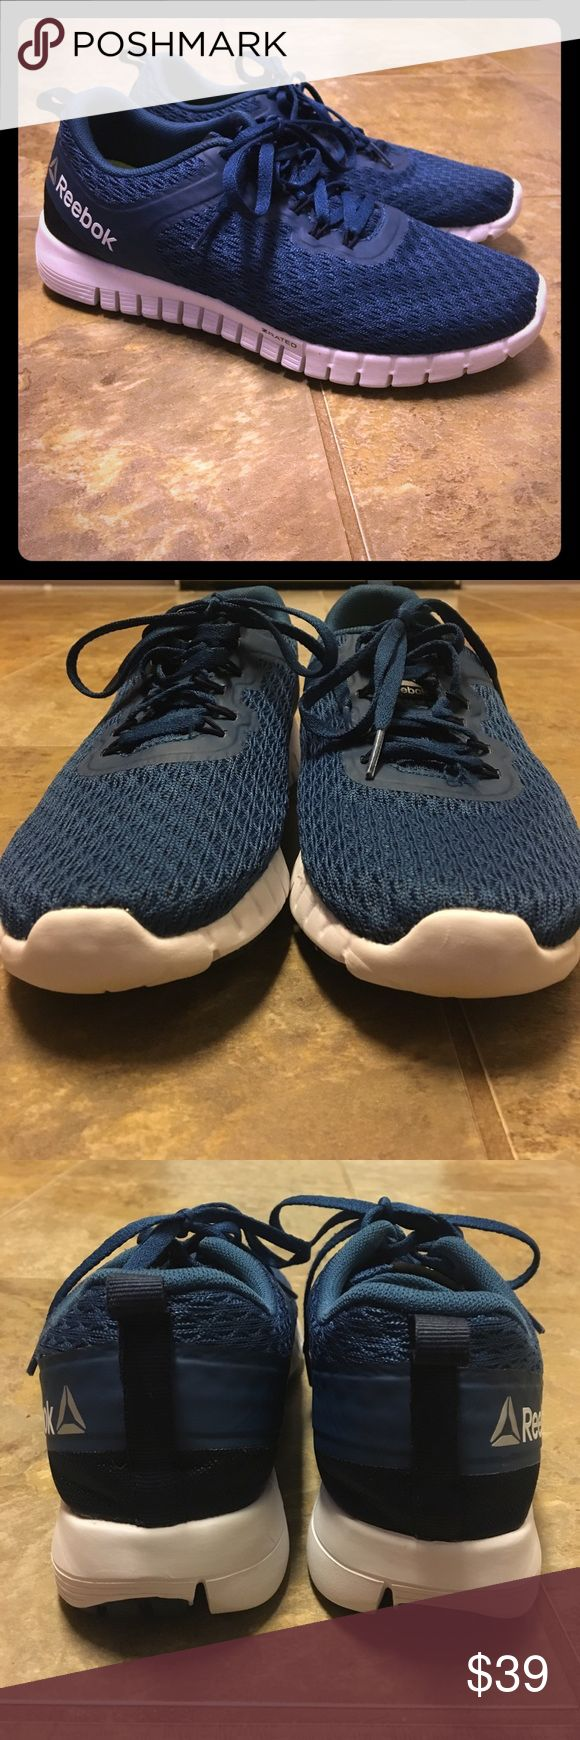 Reebok Memory foam sneaker Lightly worn. Have been washed. Like new. Reebok Shoes Athletic Shoes